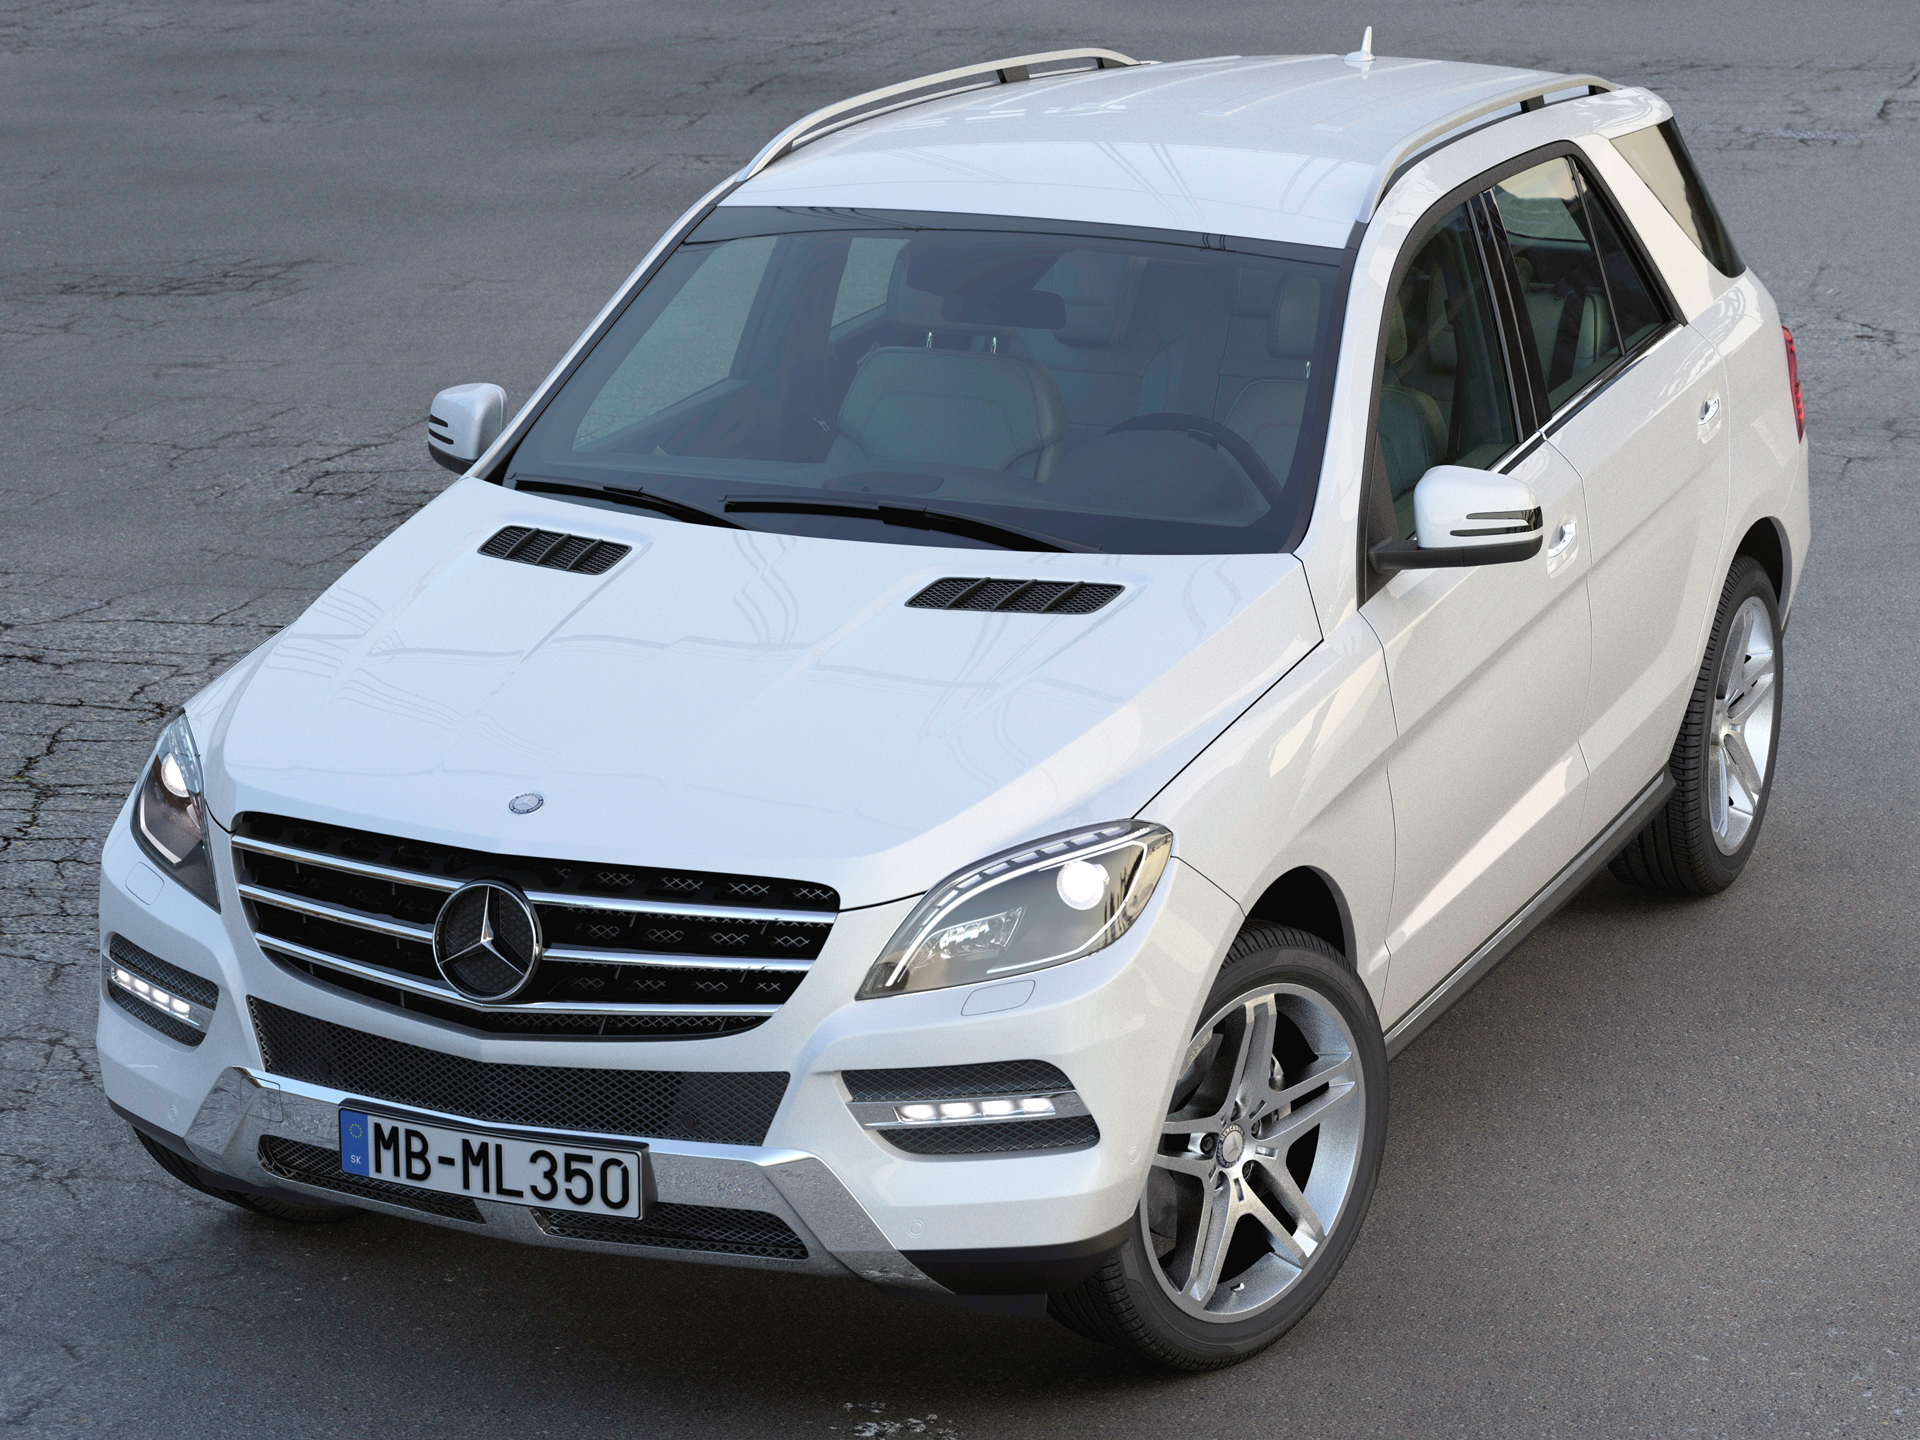 mercedes benz ml class 2013 3d model 3ds max fbx c4d obj 213347